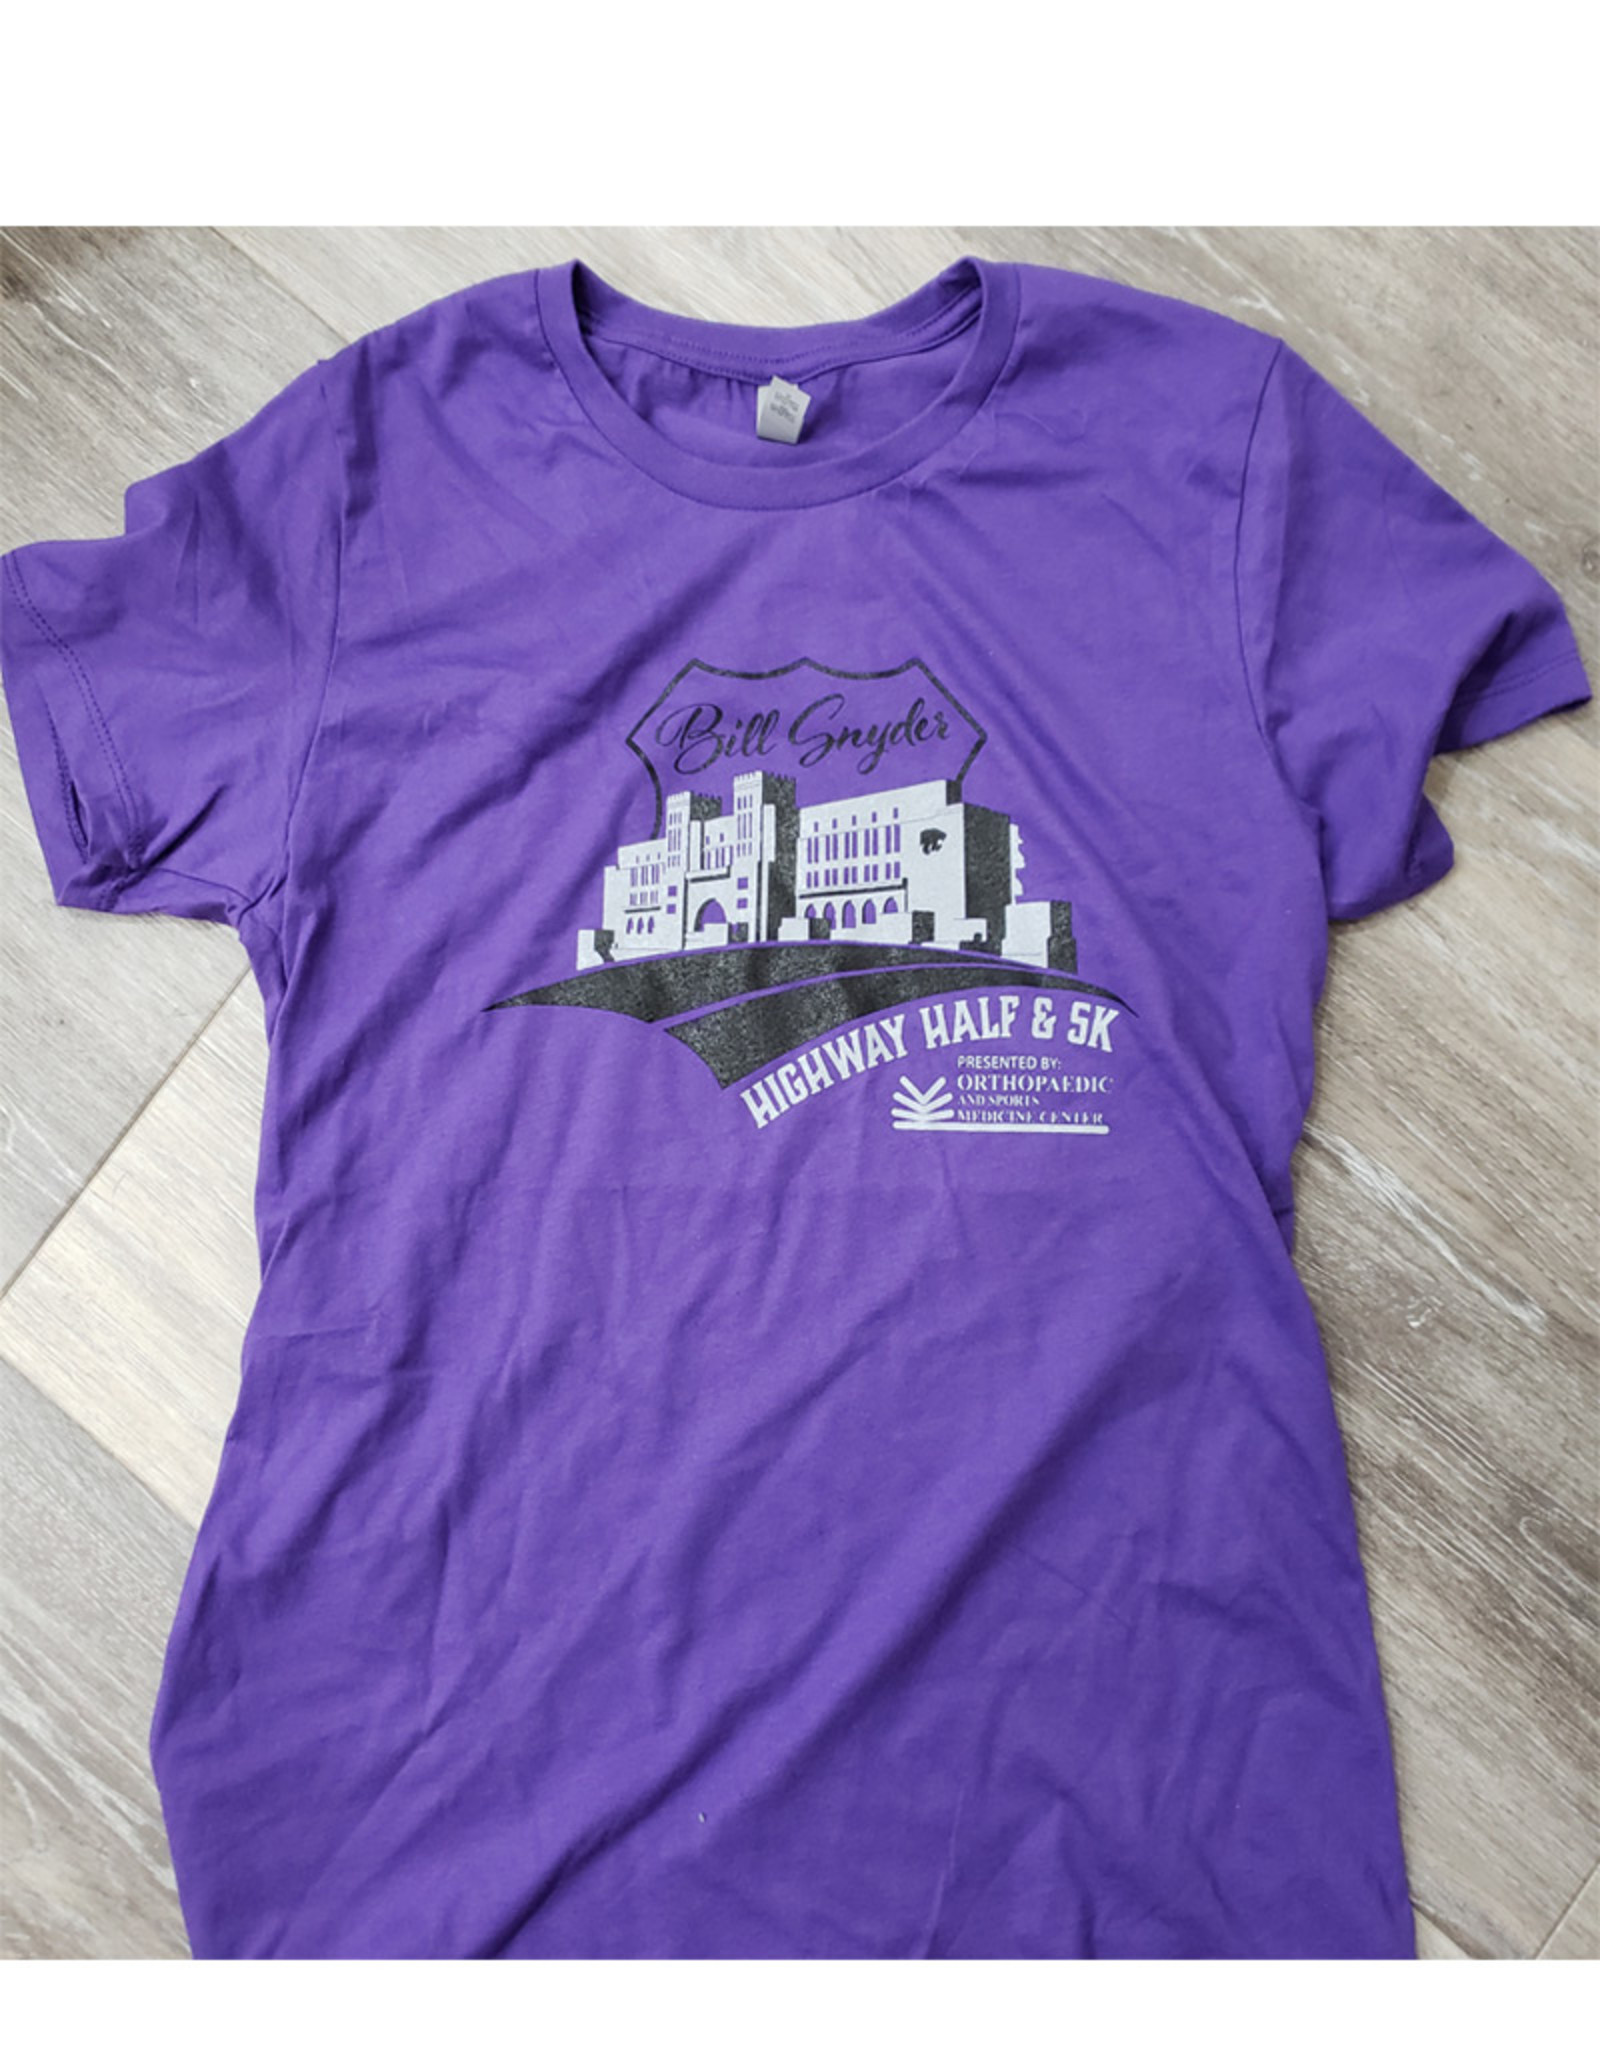 MRC Bill Snyder Highway Half & 5K Tee 2020